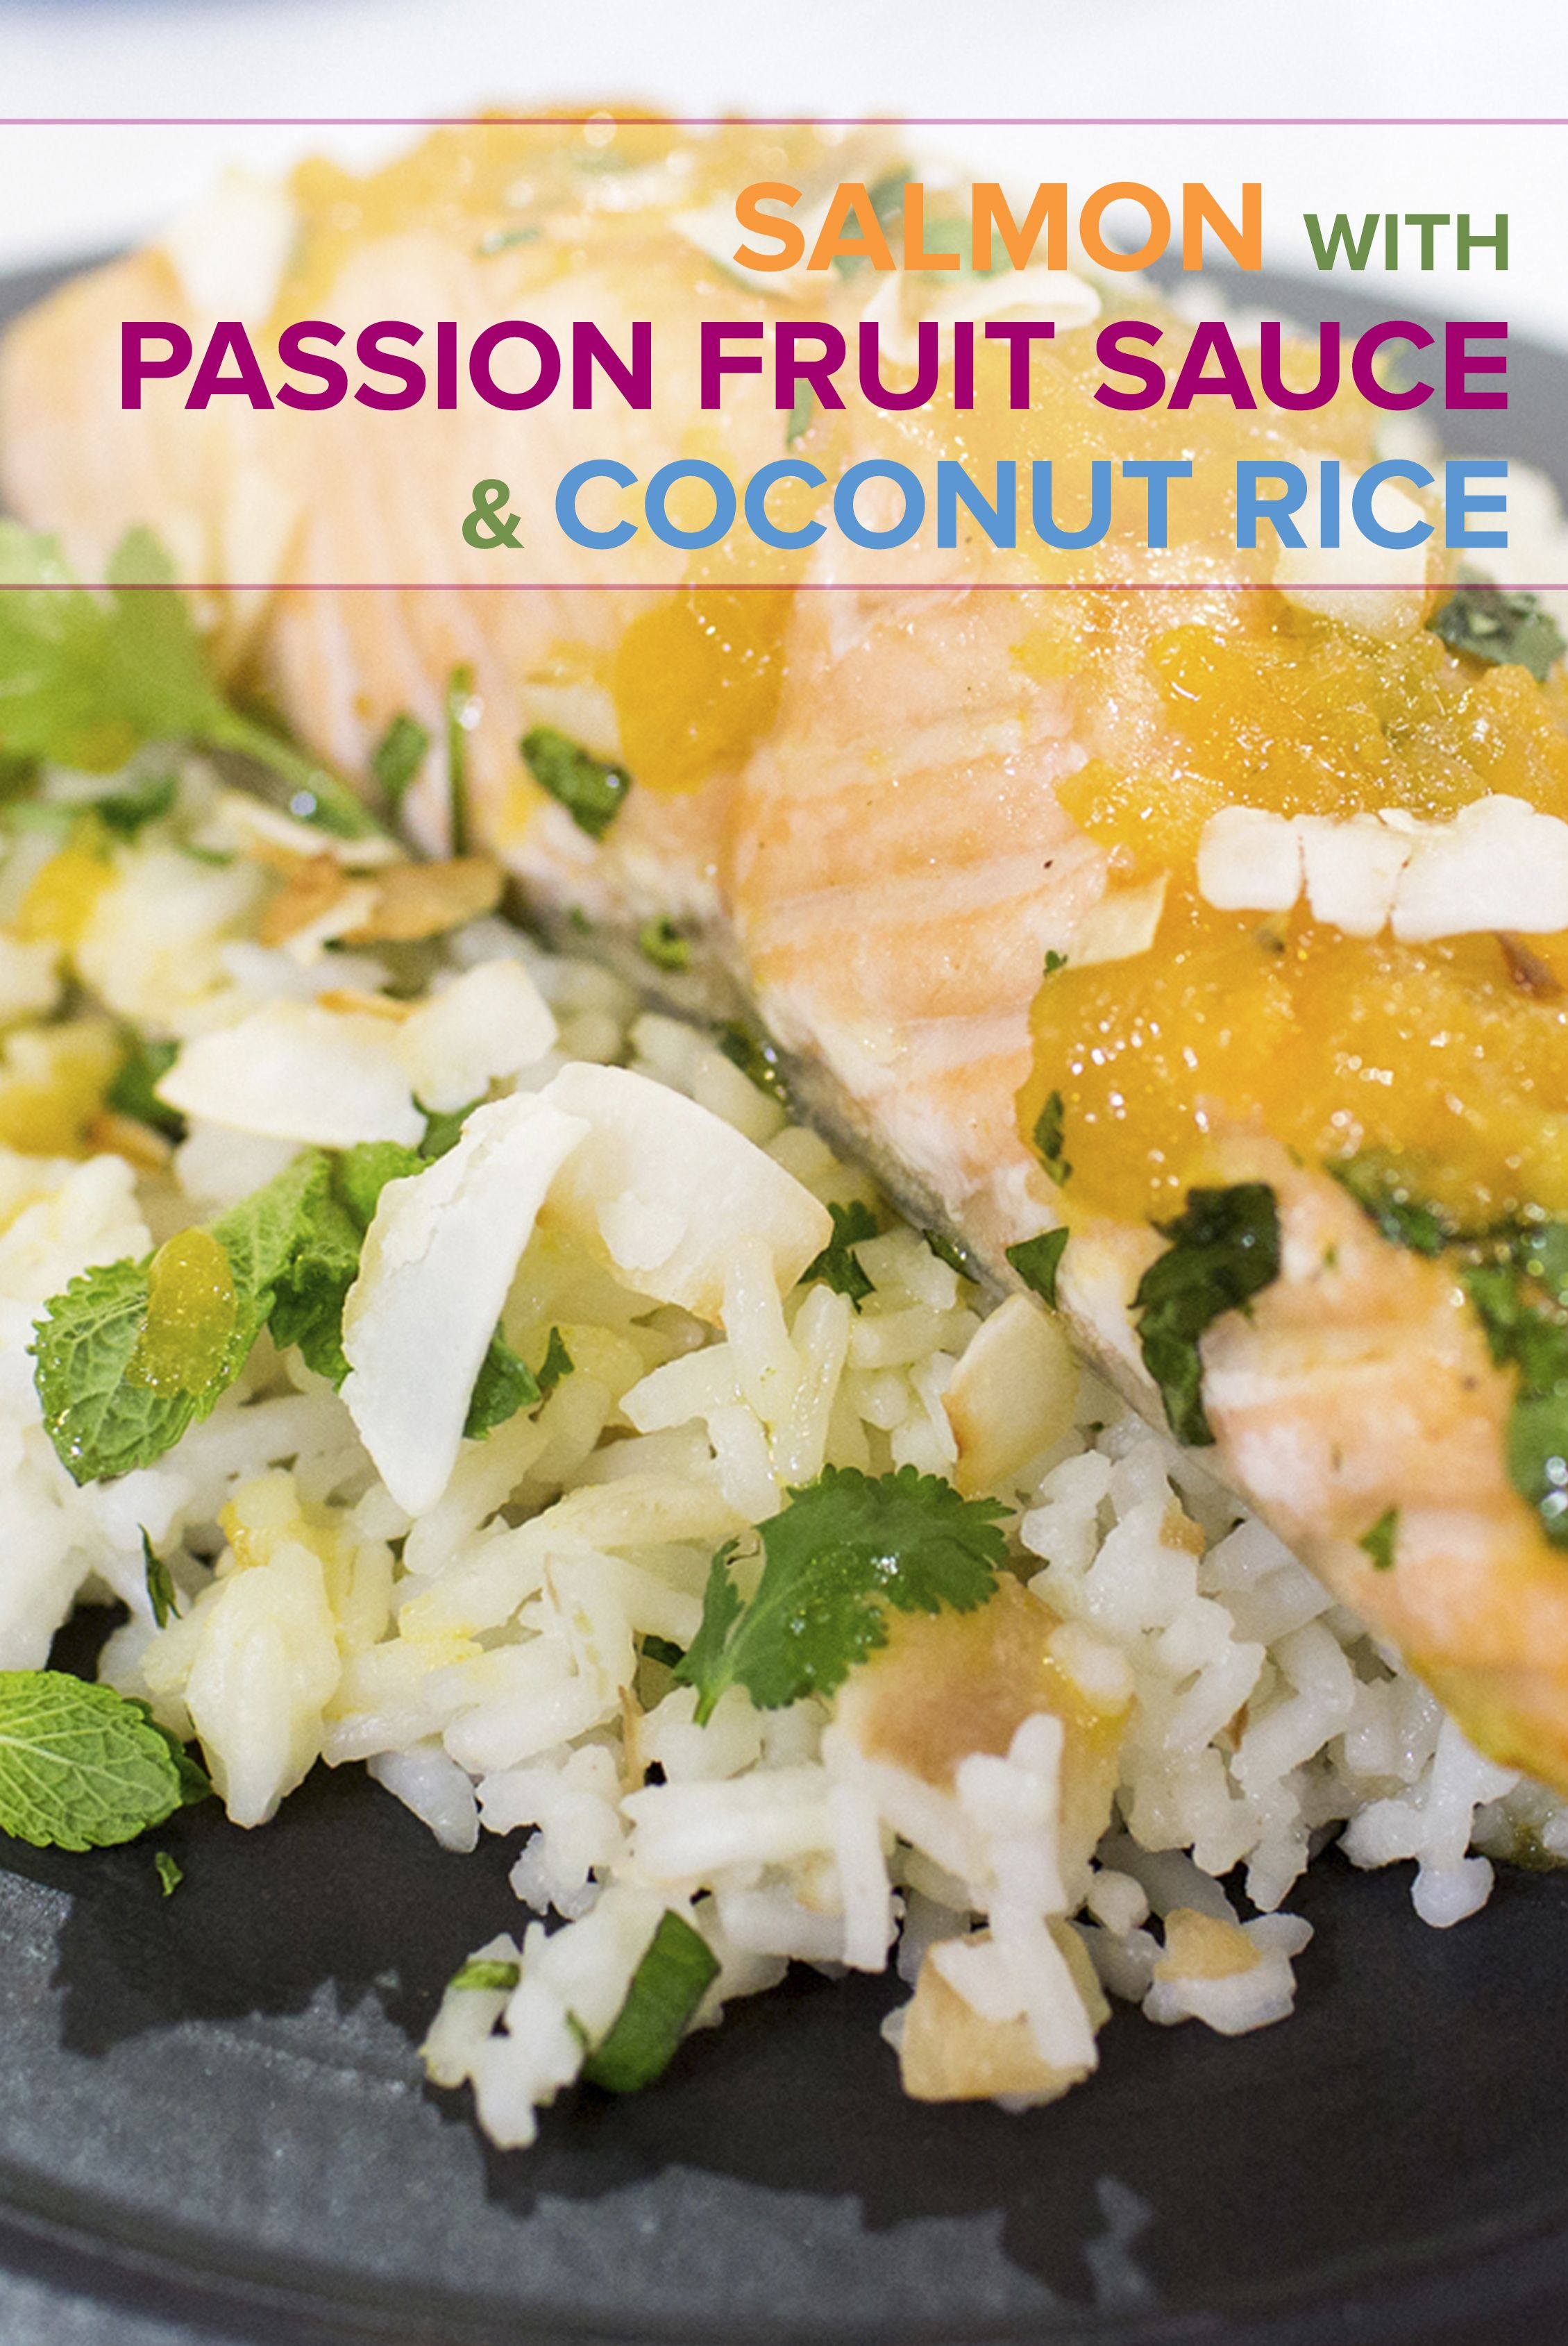 Salmon with Passion Fruit Sauce and Coconut Rice